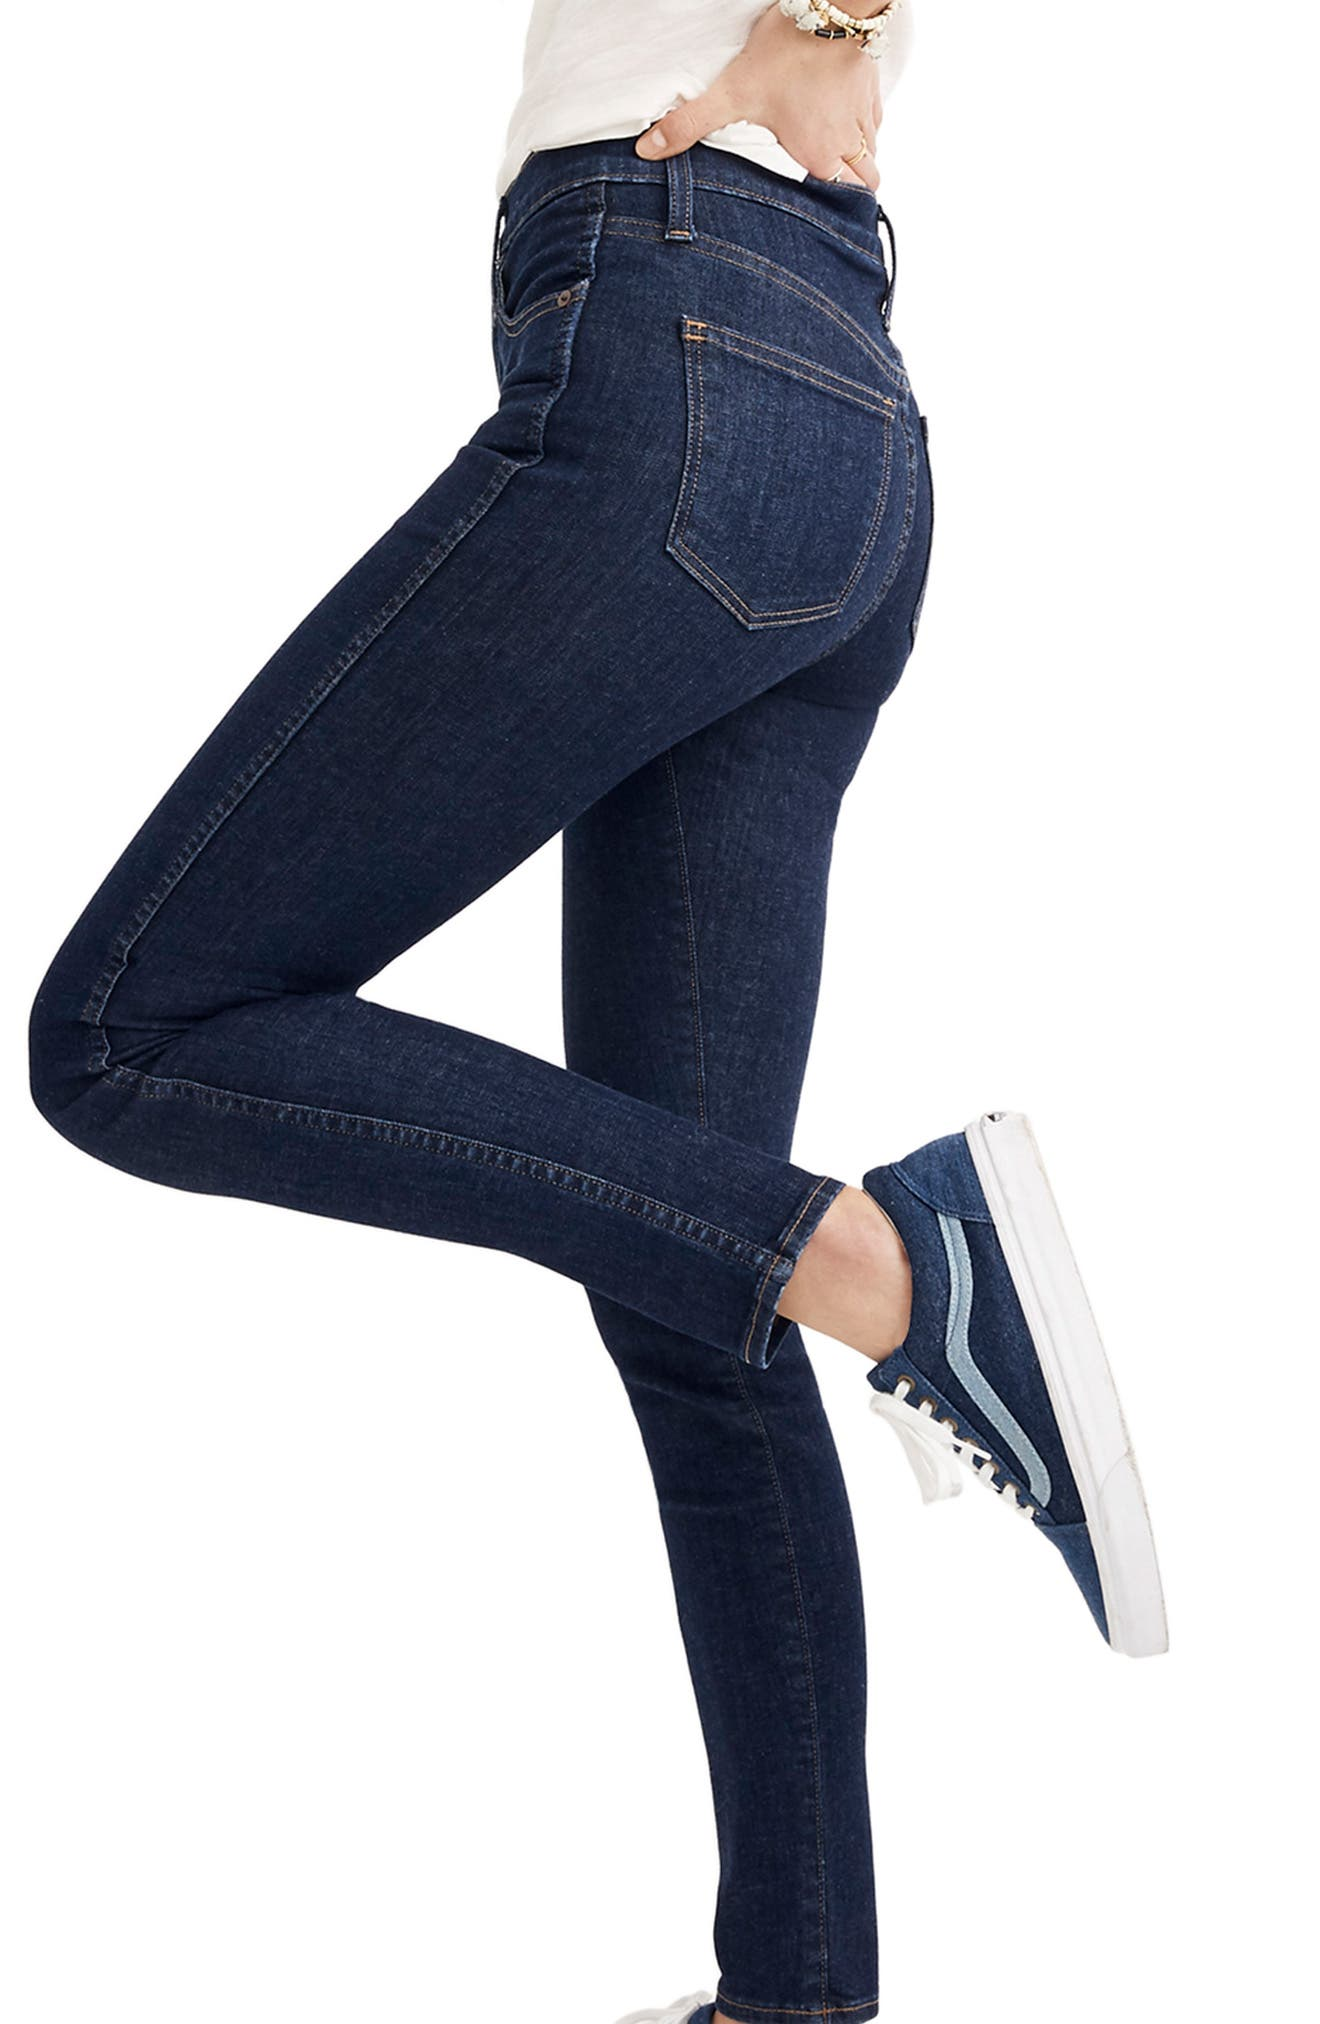 10-Inch High Waist Skinny Jeans,                             Alternate thumbnail 4, color,                             400